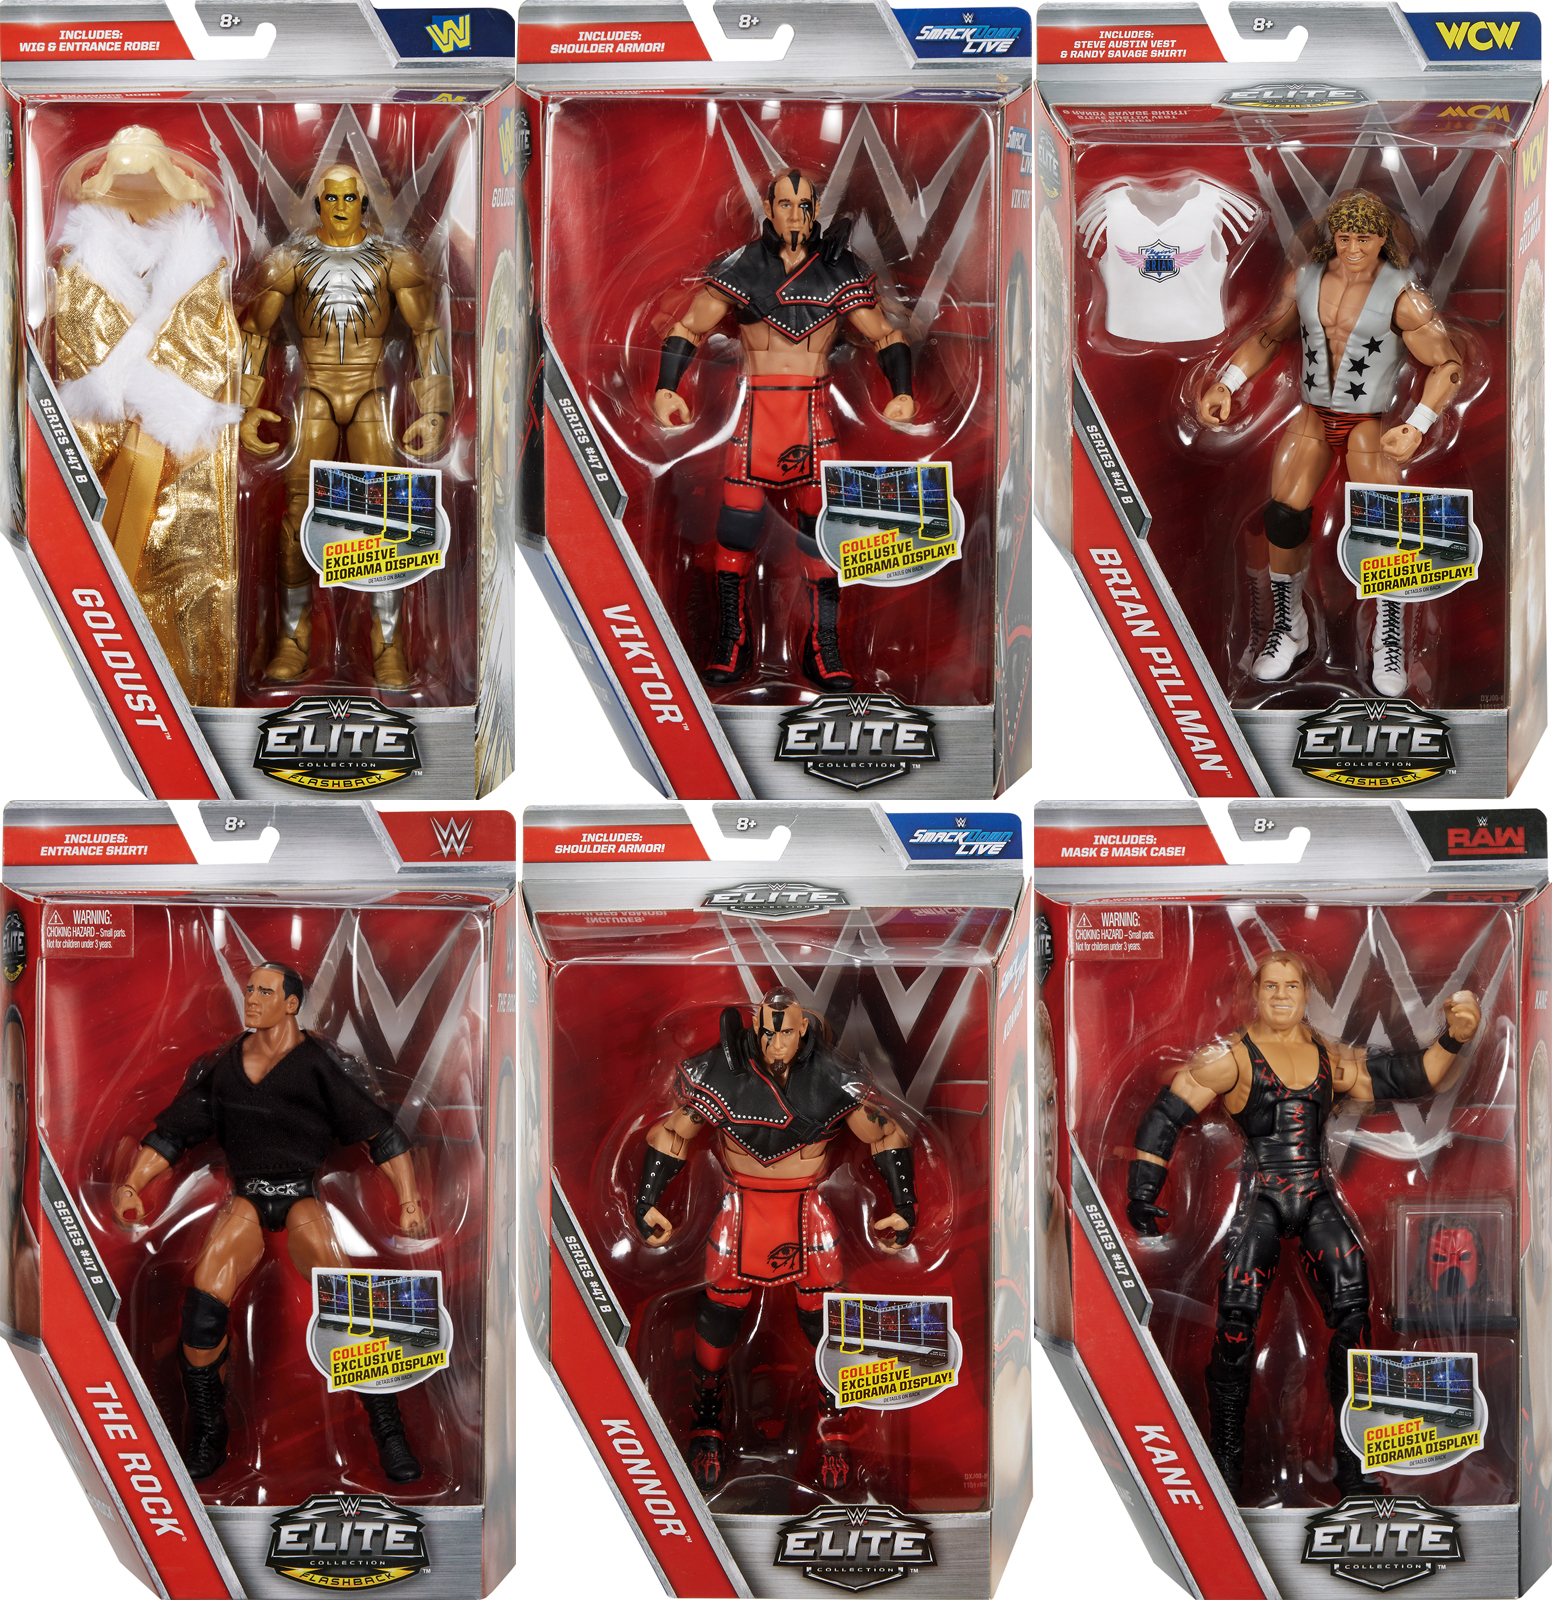 Complete Set of 6 WWE Elite 47.5 Toy Wrestling Action Figures by